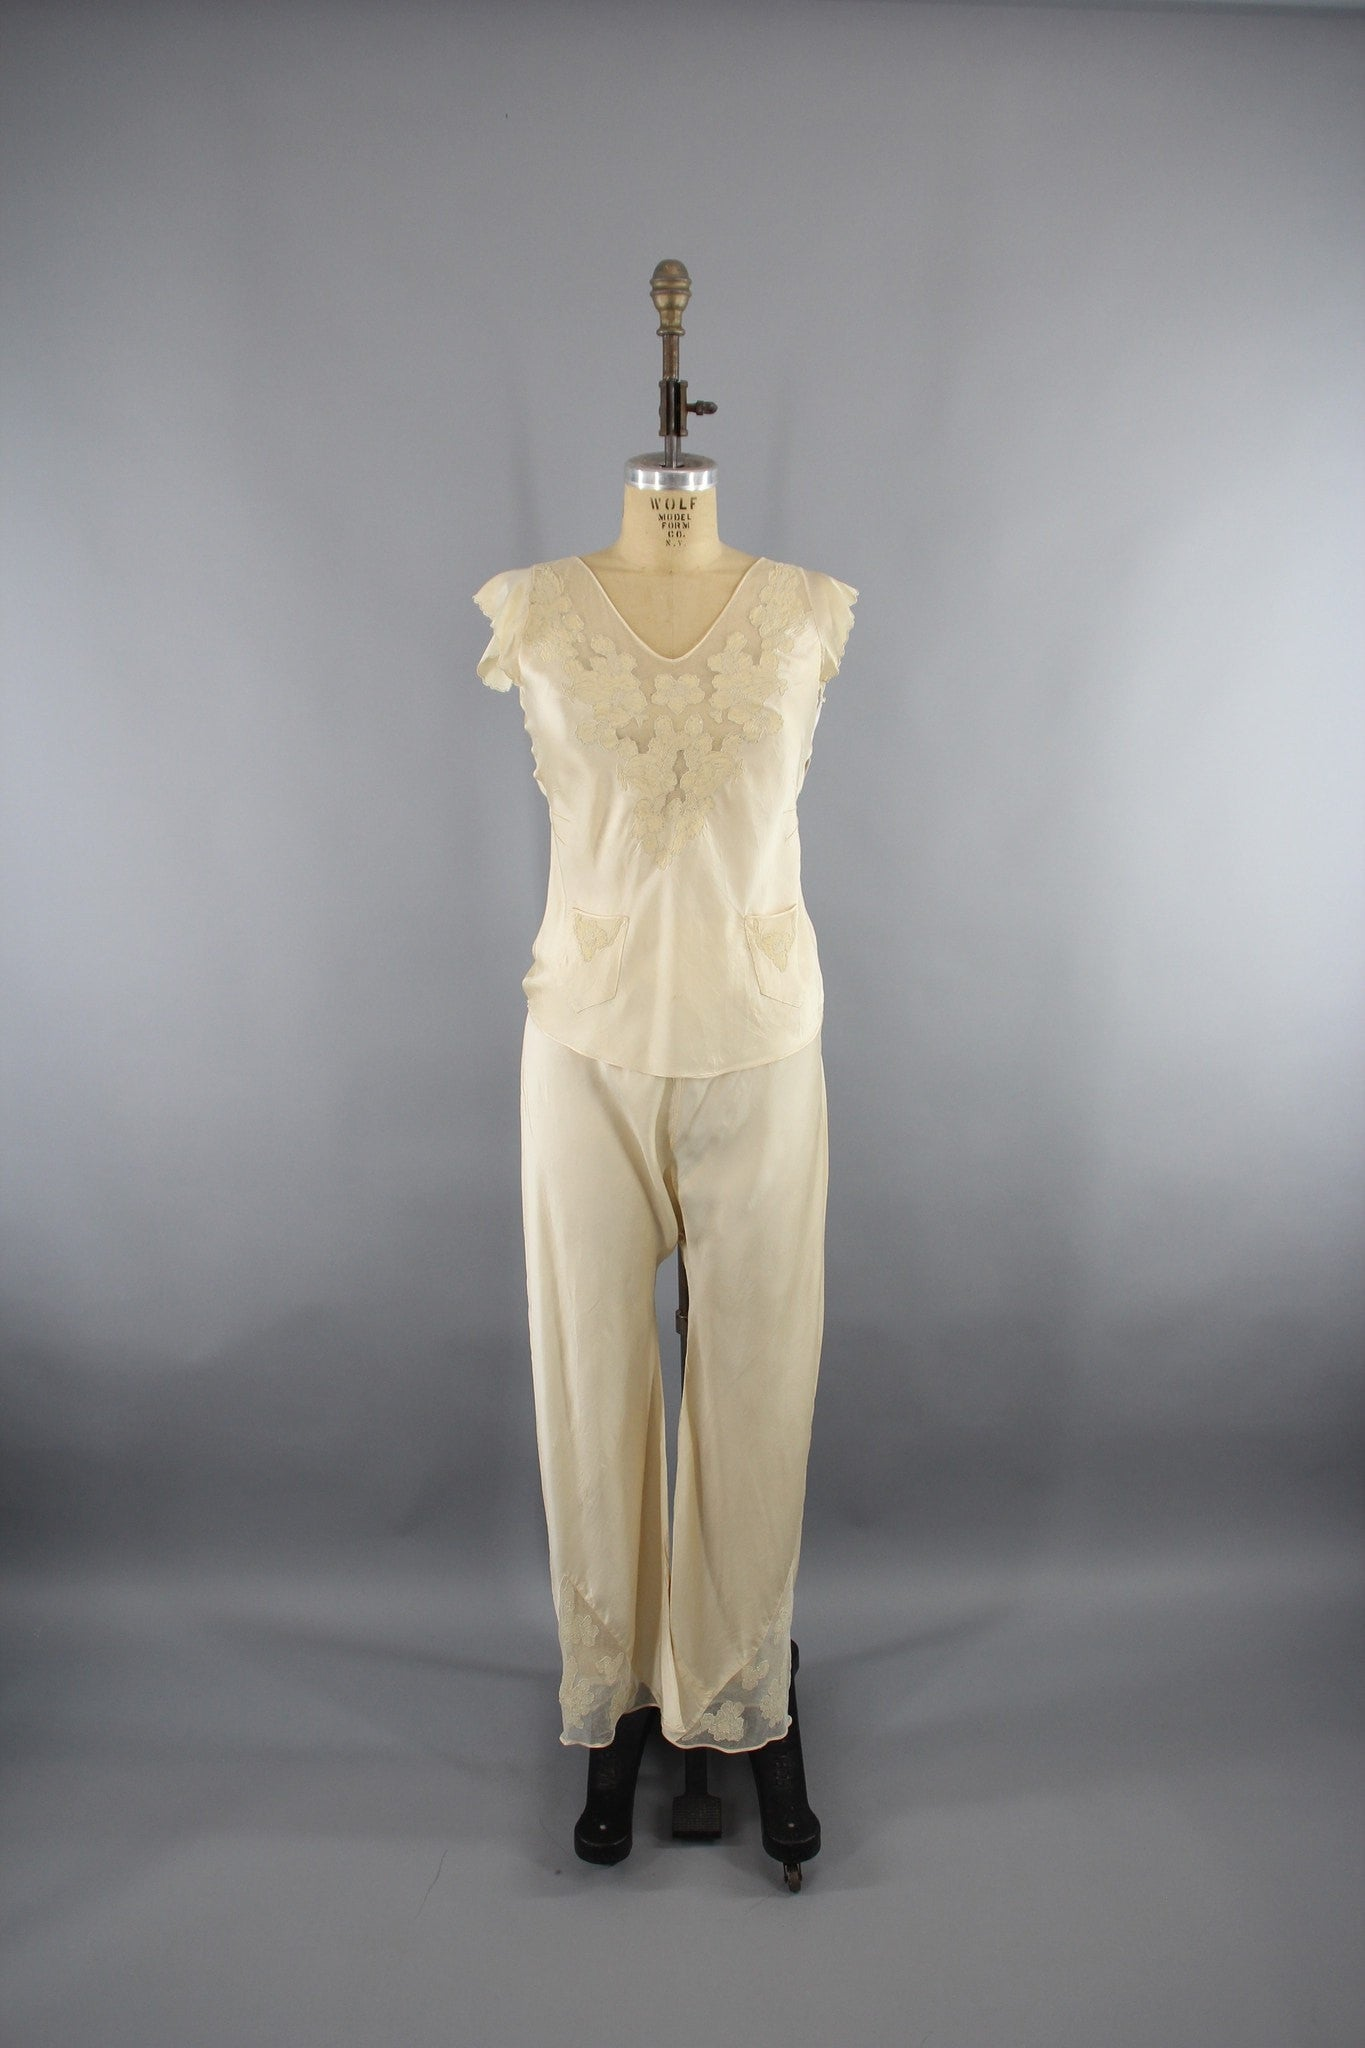 Vintage 1930s Silk Satin and Lace Pajamas Loungewear Lingerie ThisBlueBird